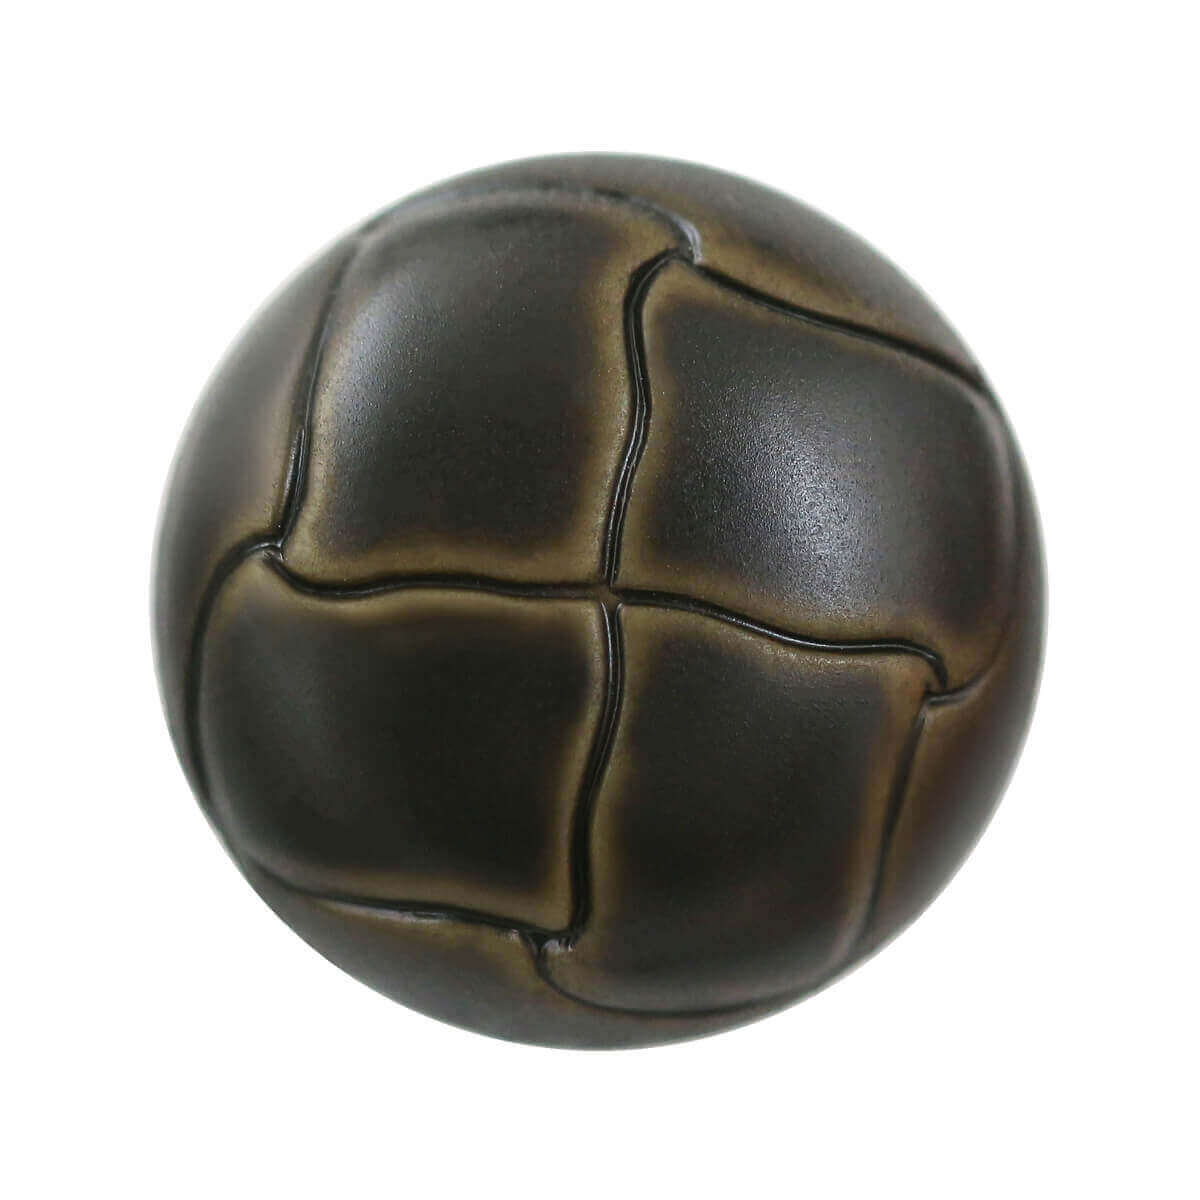 G077-YTA5-nylon-button-imitation-leather-color-military-green